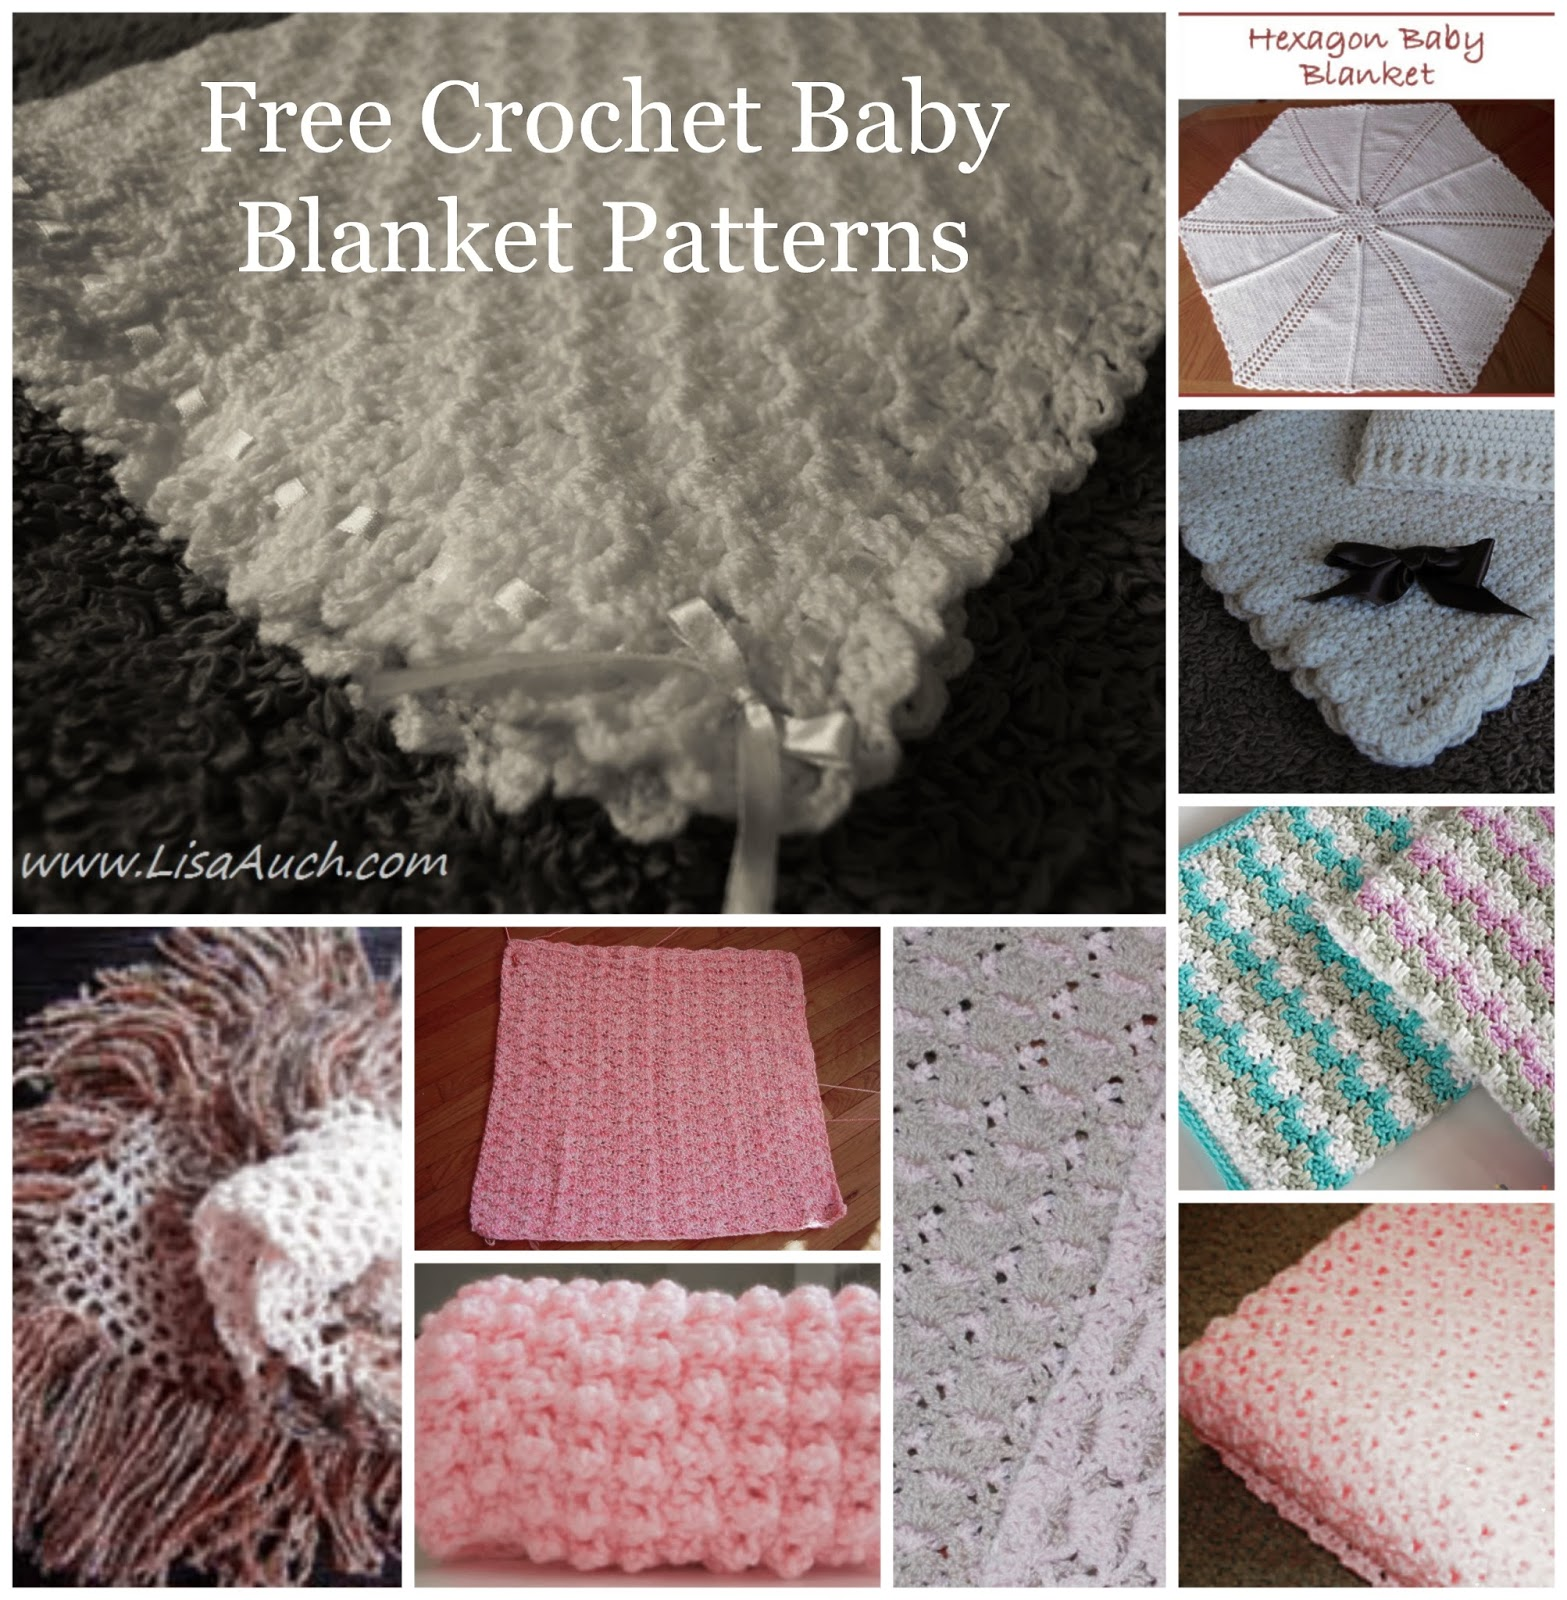 Free Crochet Baby Blanket Patterns : free baby blanket crochet patterns-crochet patterns free-free crochet ...